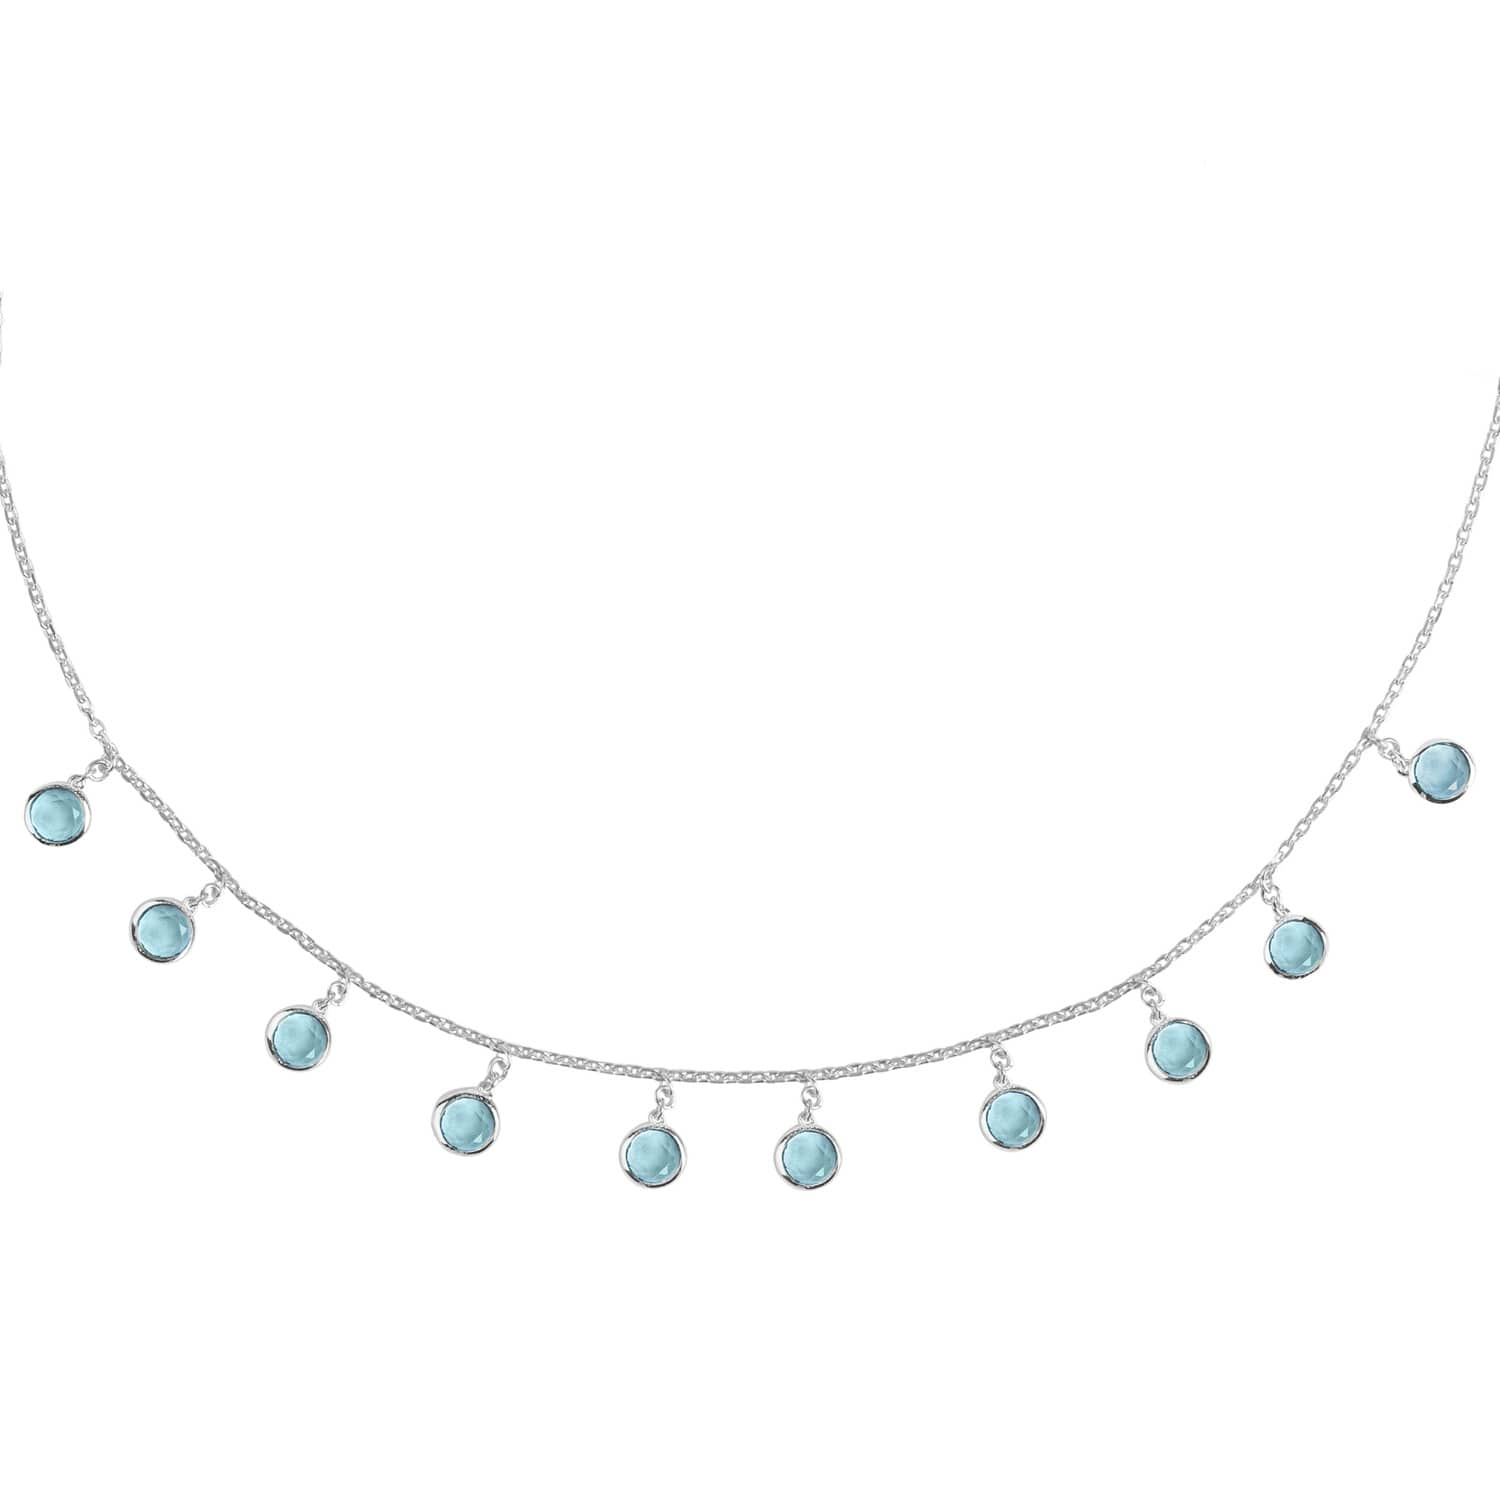 Latelita London Verona Gemstone Strand Necklace Gold Blue Topaz jHl9DhI